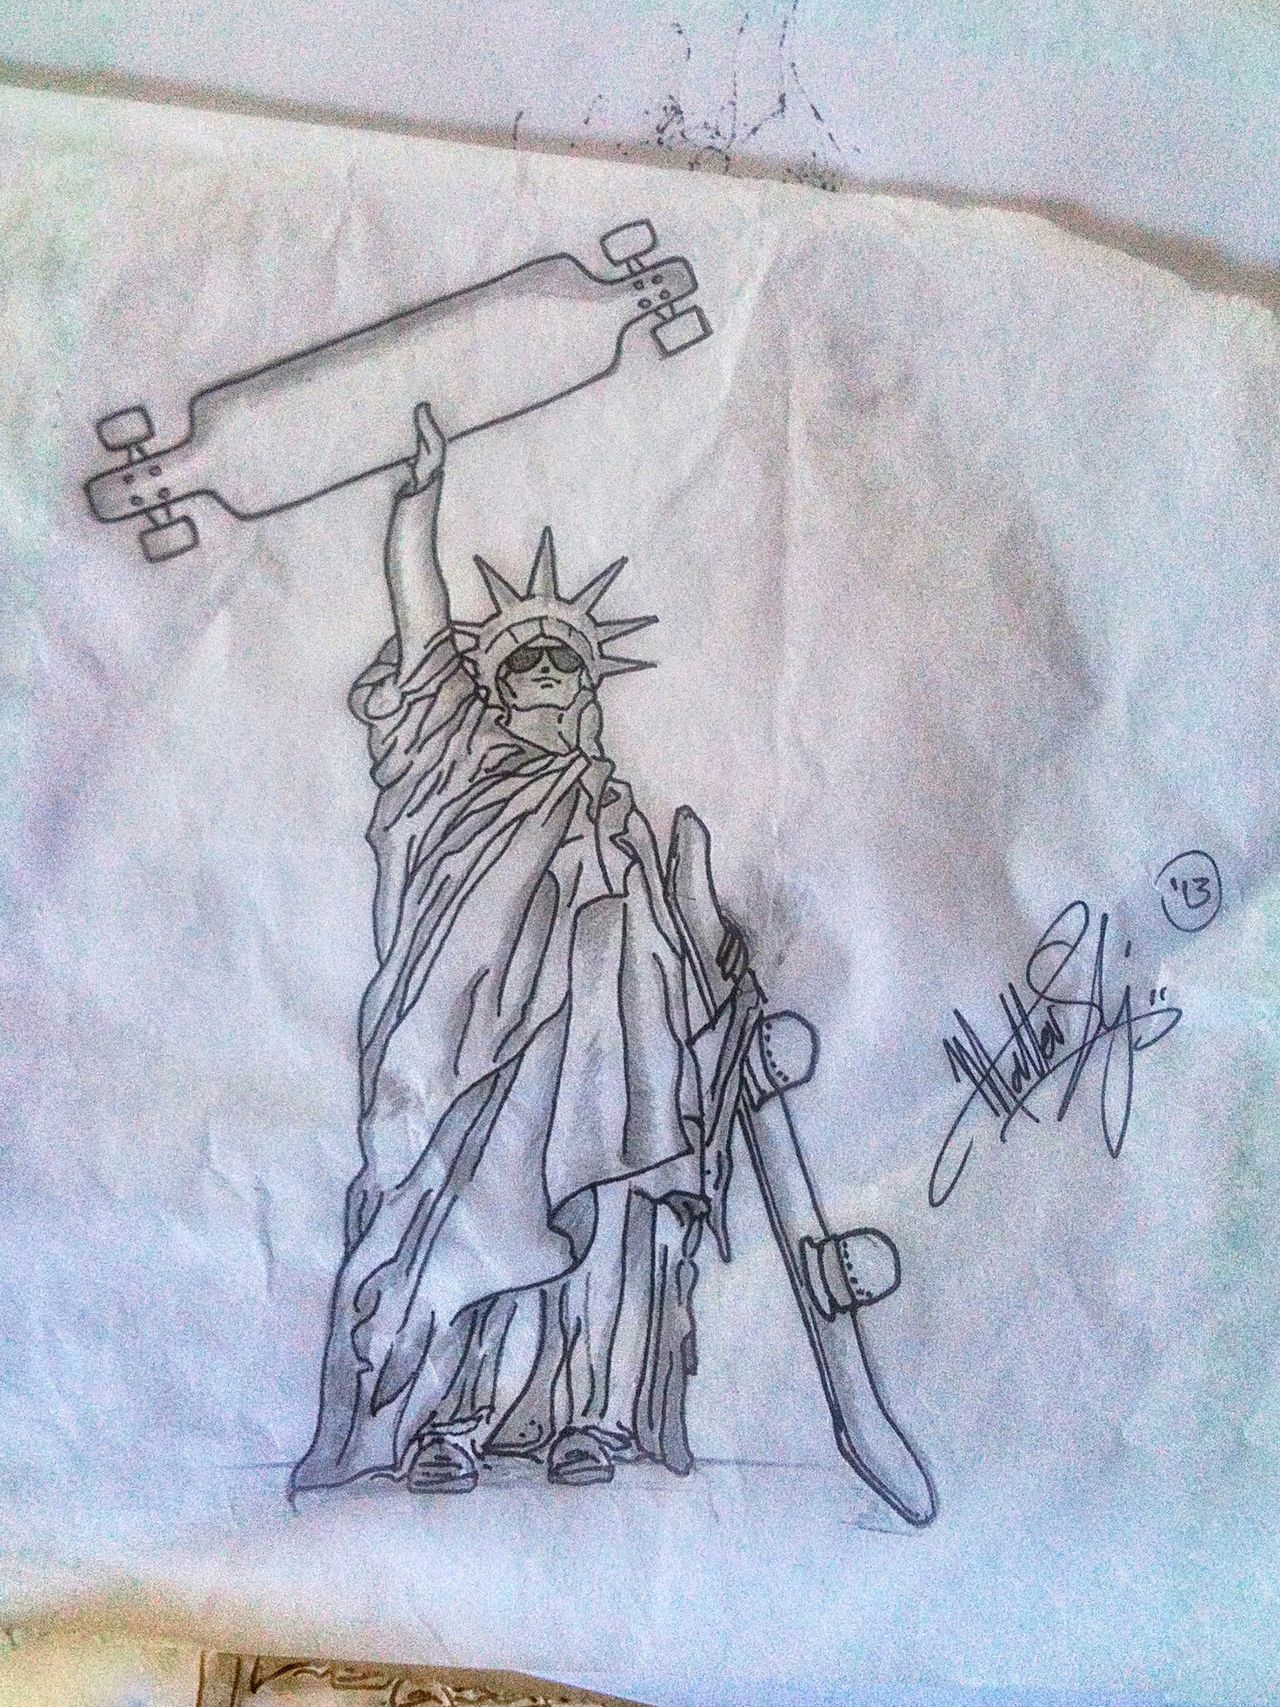 Sketch Drawing - Art Product Pencil Drawing No People Drawing - Activity Paper Painted Image Indoors  Close-up Sketch Pad Day Liberty Statue Longboard Longboarding Skateboarding Snowboard EyeEmNewHere